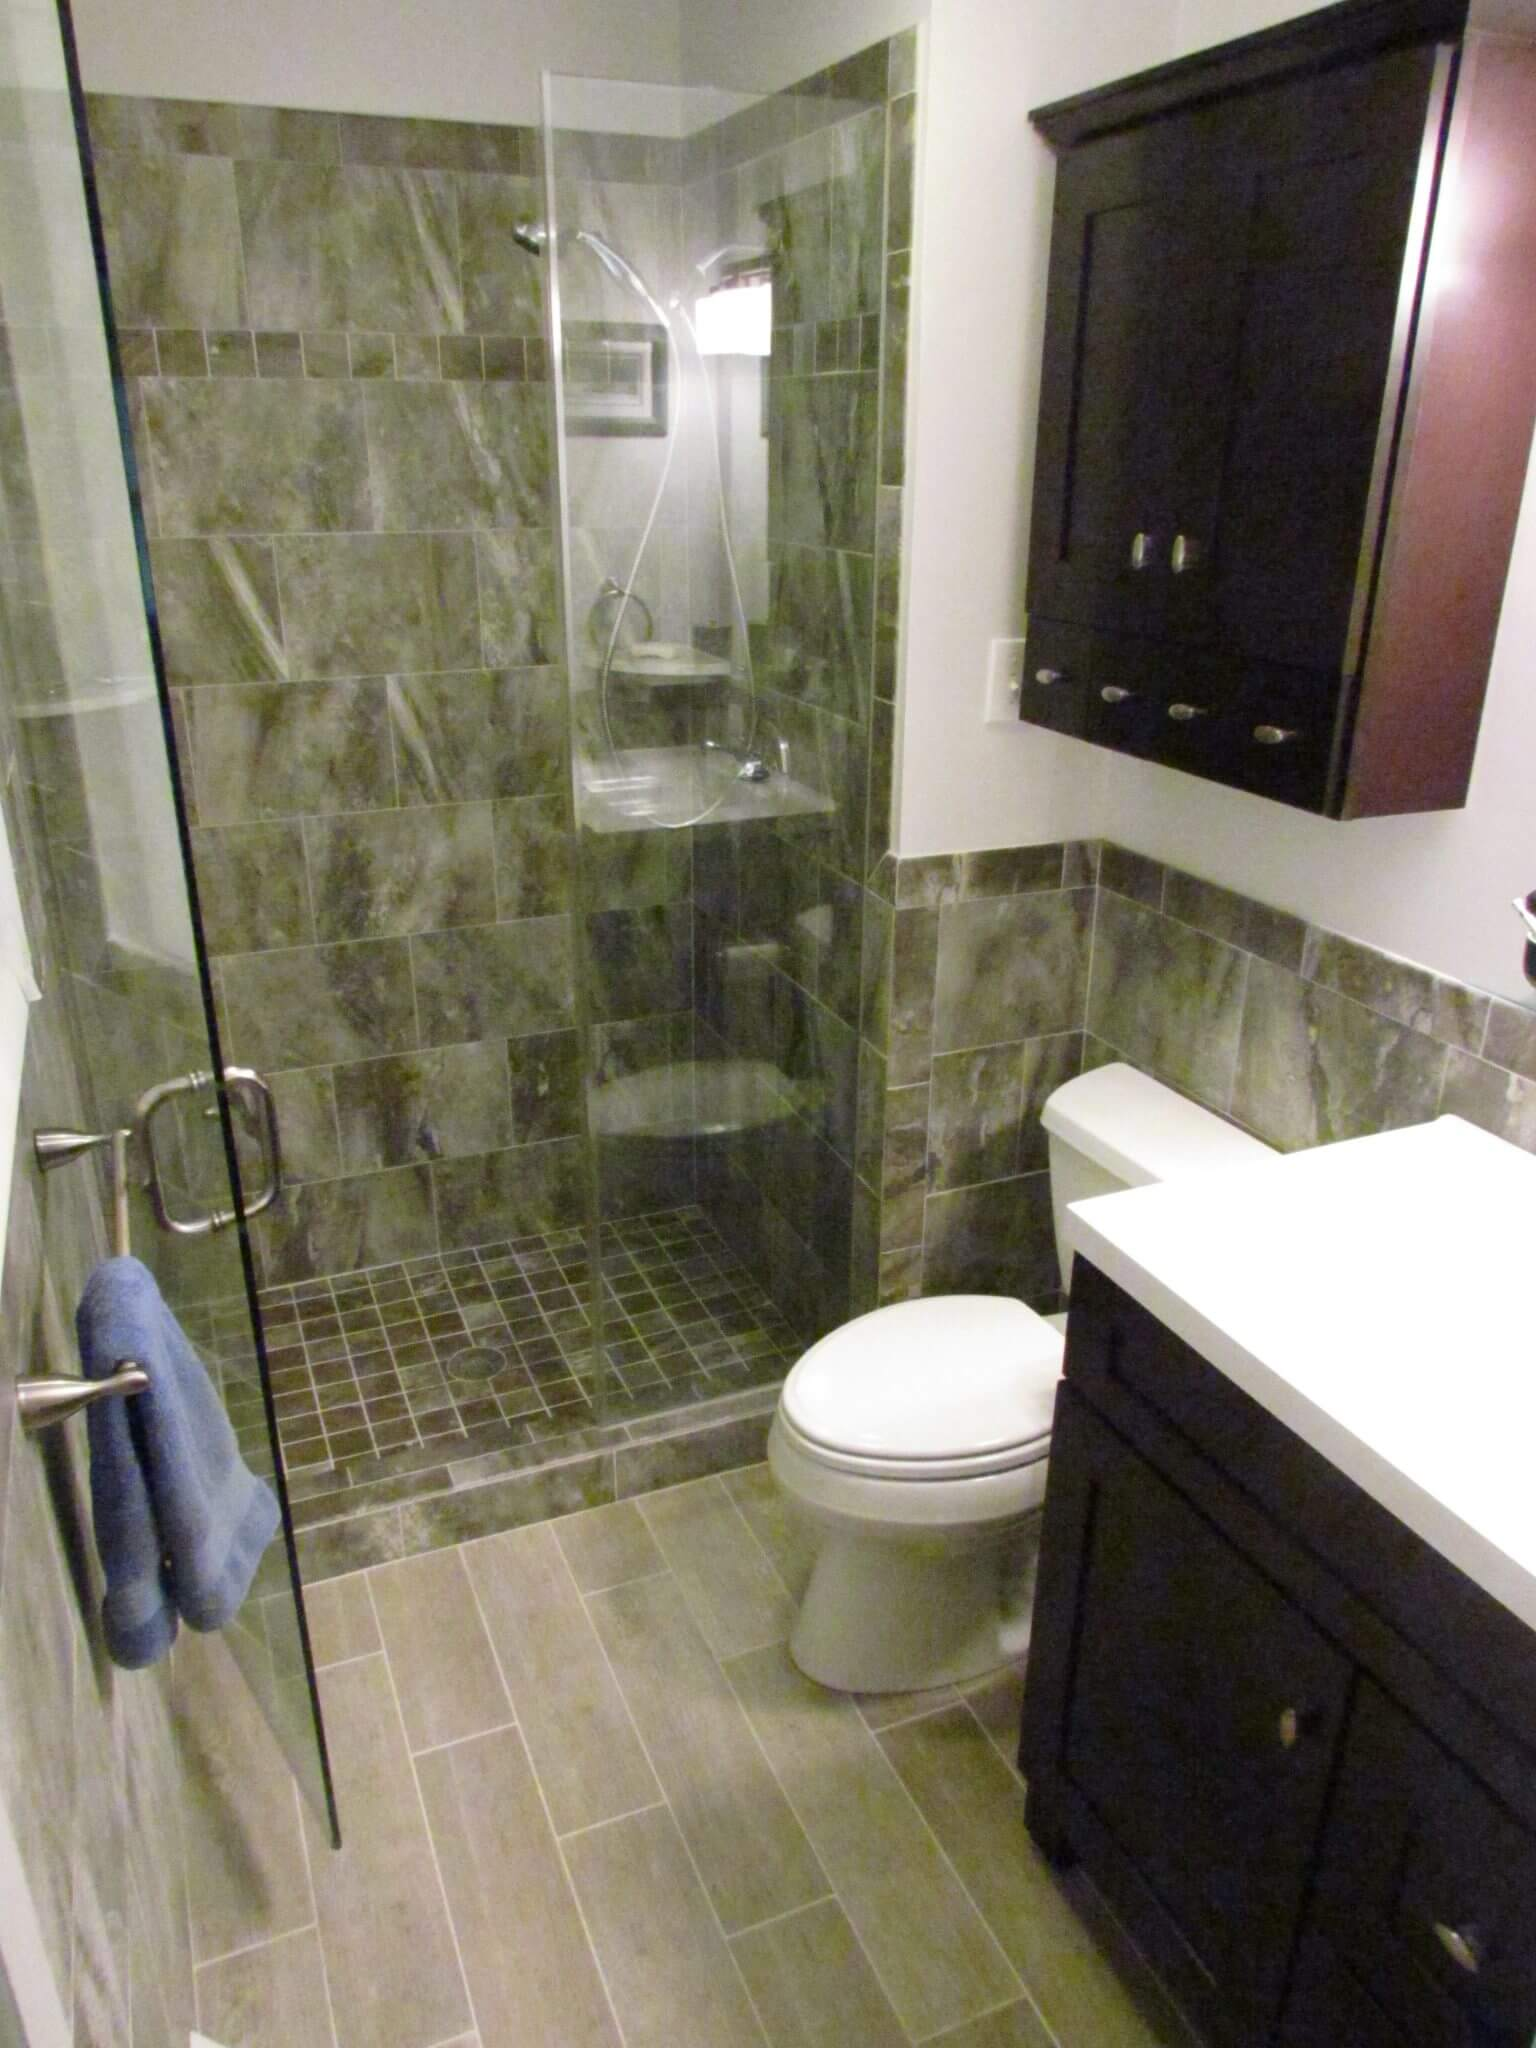 Bathroom Renovation shower door open